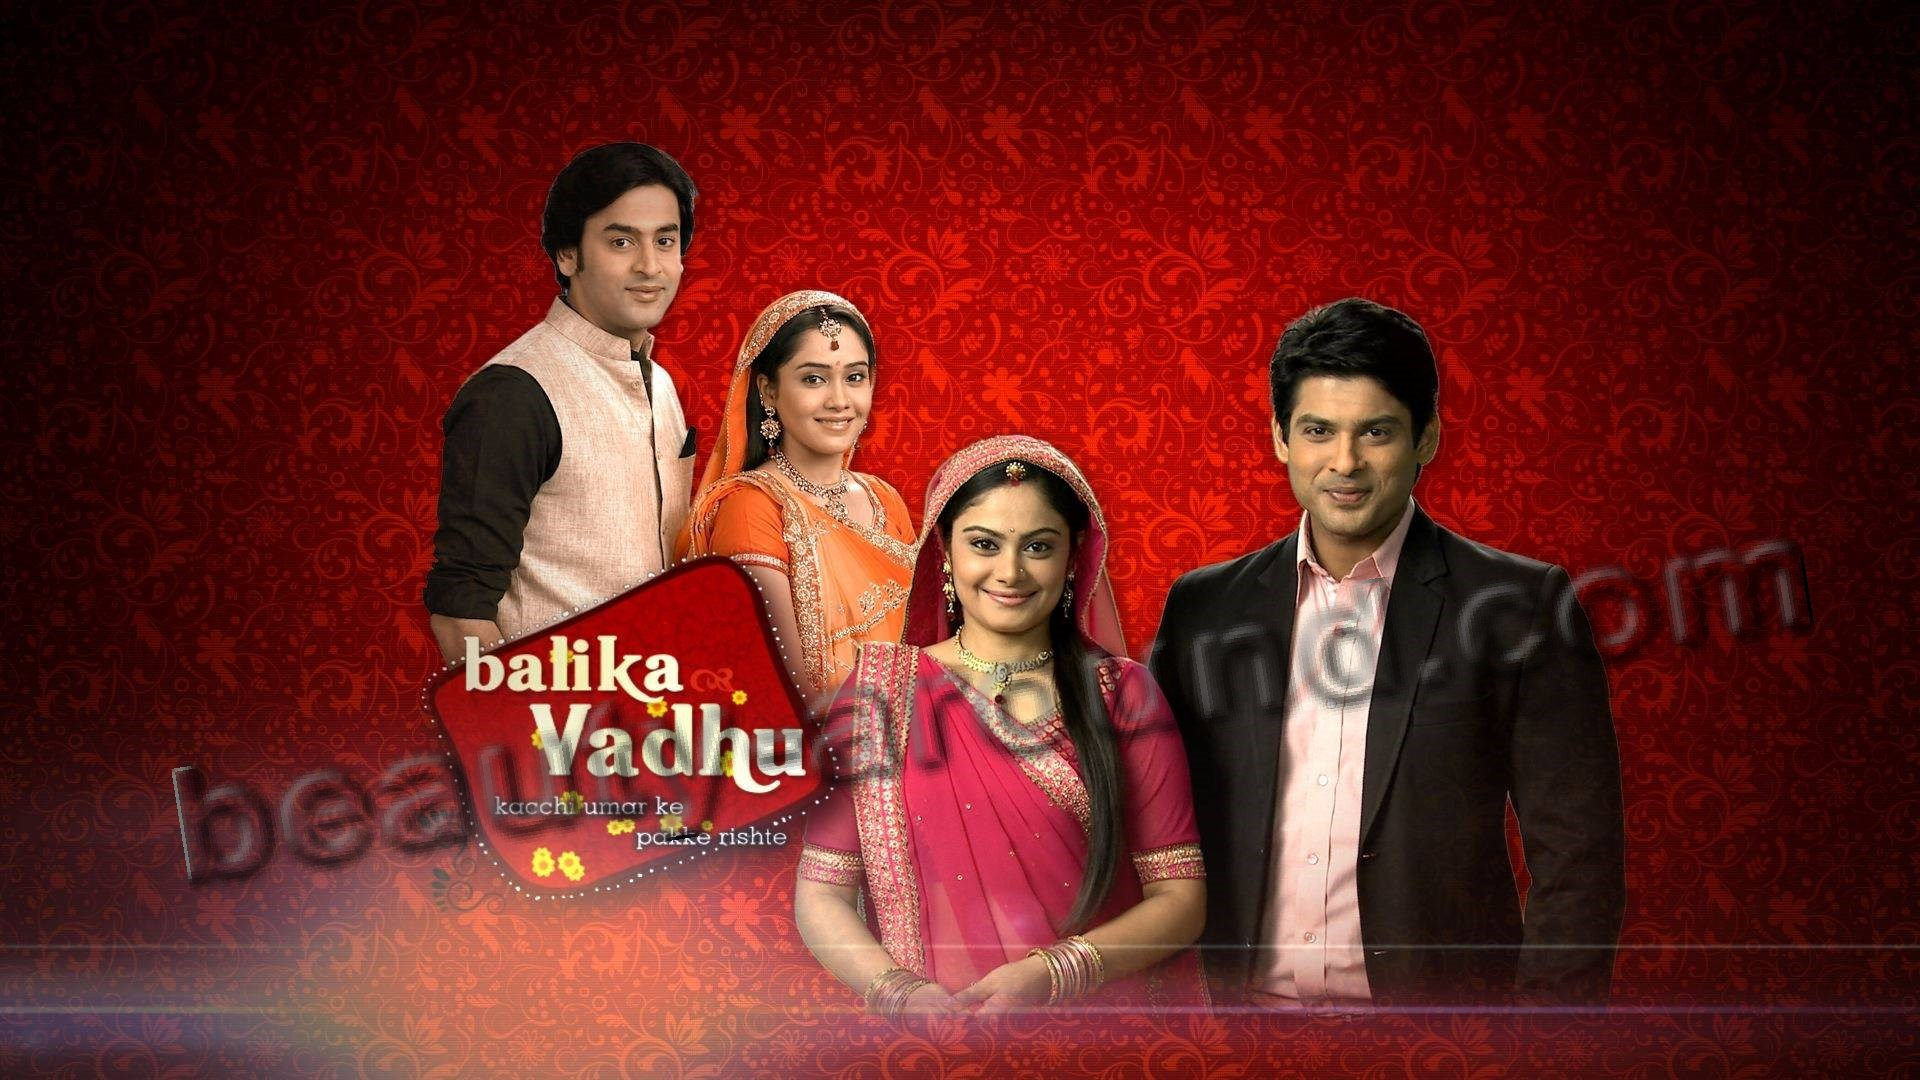 Balika Vadhu (2008) best Indian Tv serials poster